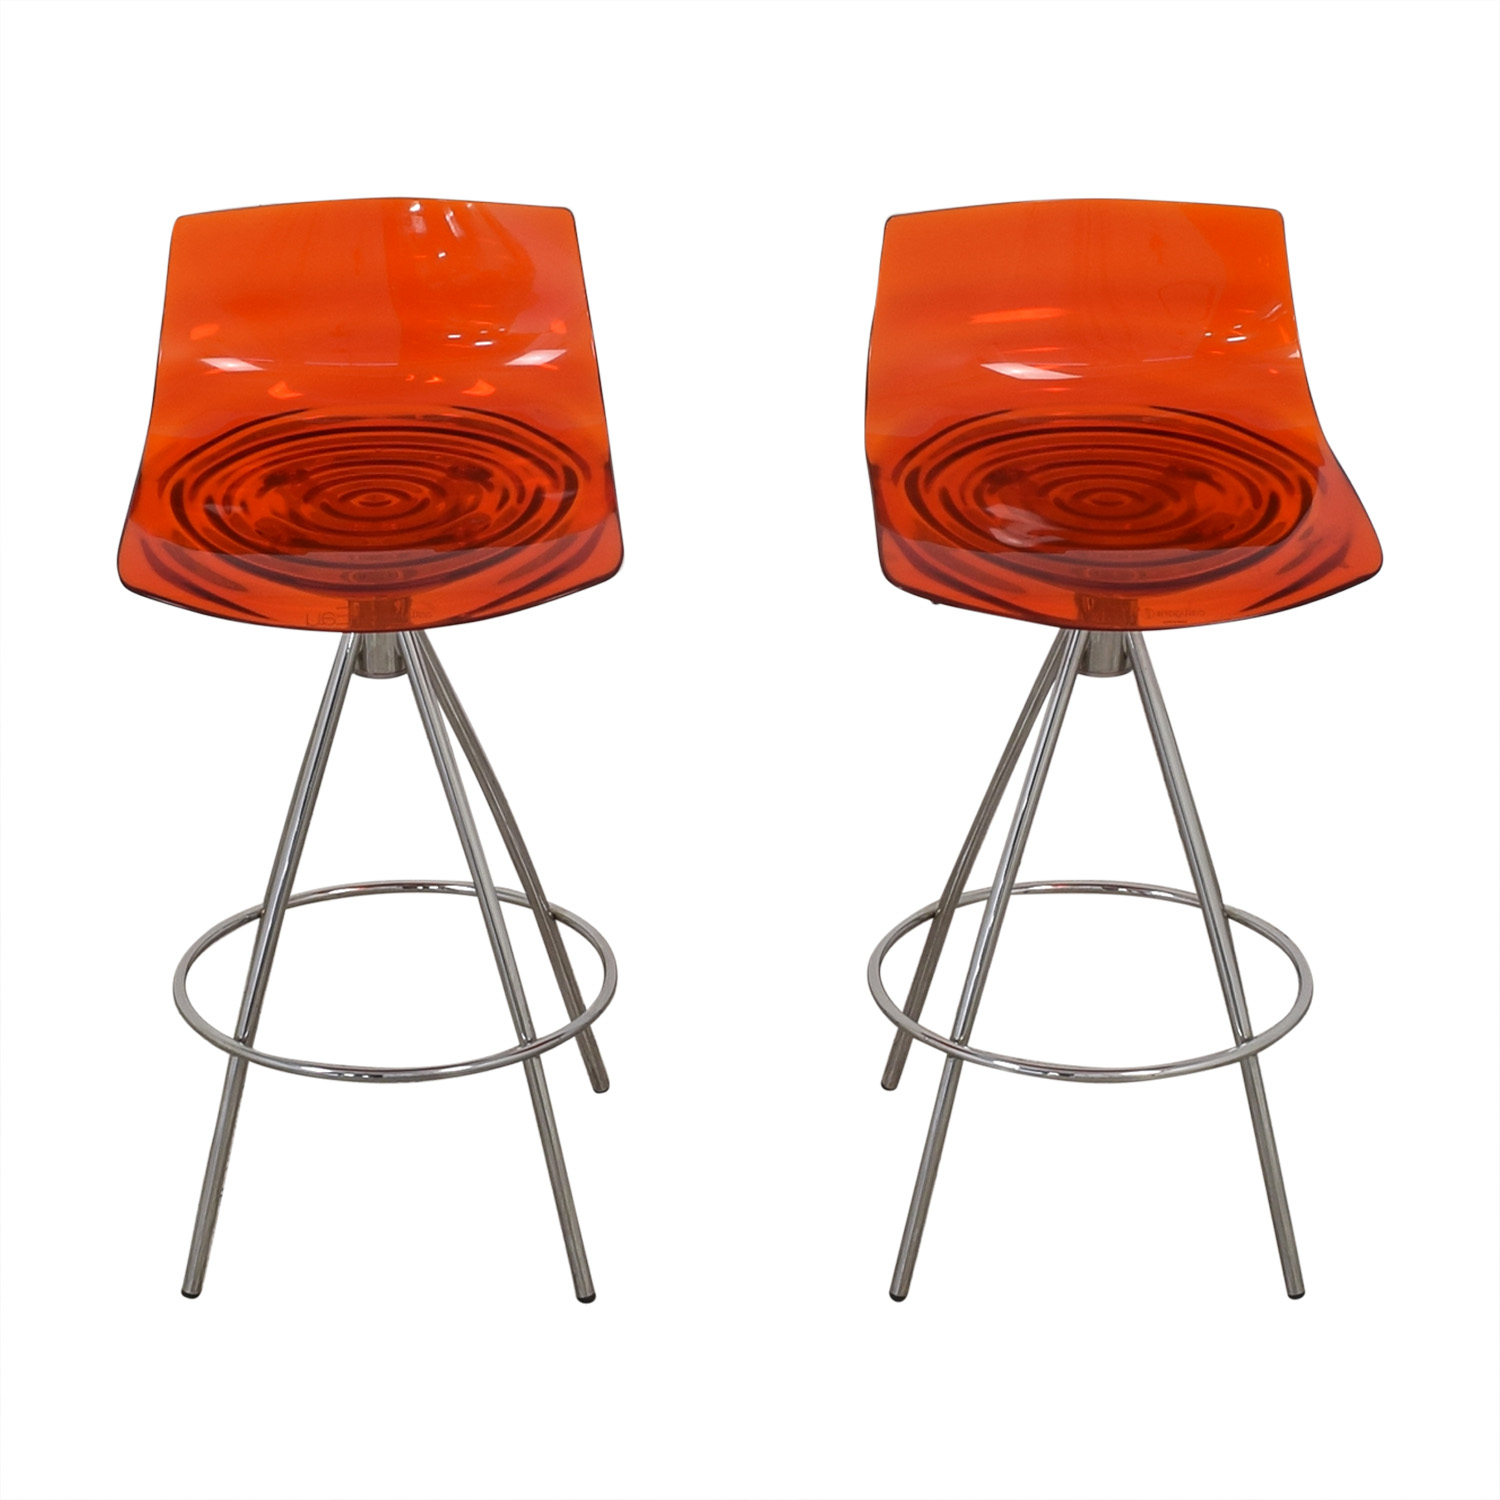 buy Calligaris l'Eau Counter Stools Calligaris Chairs